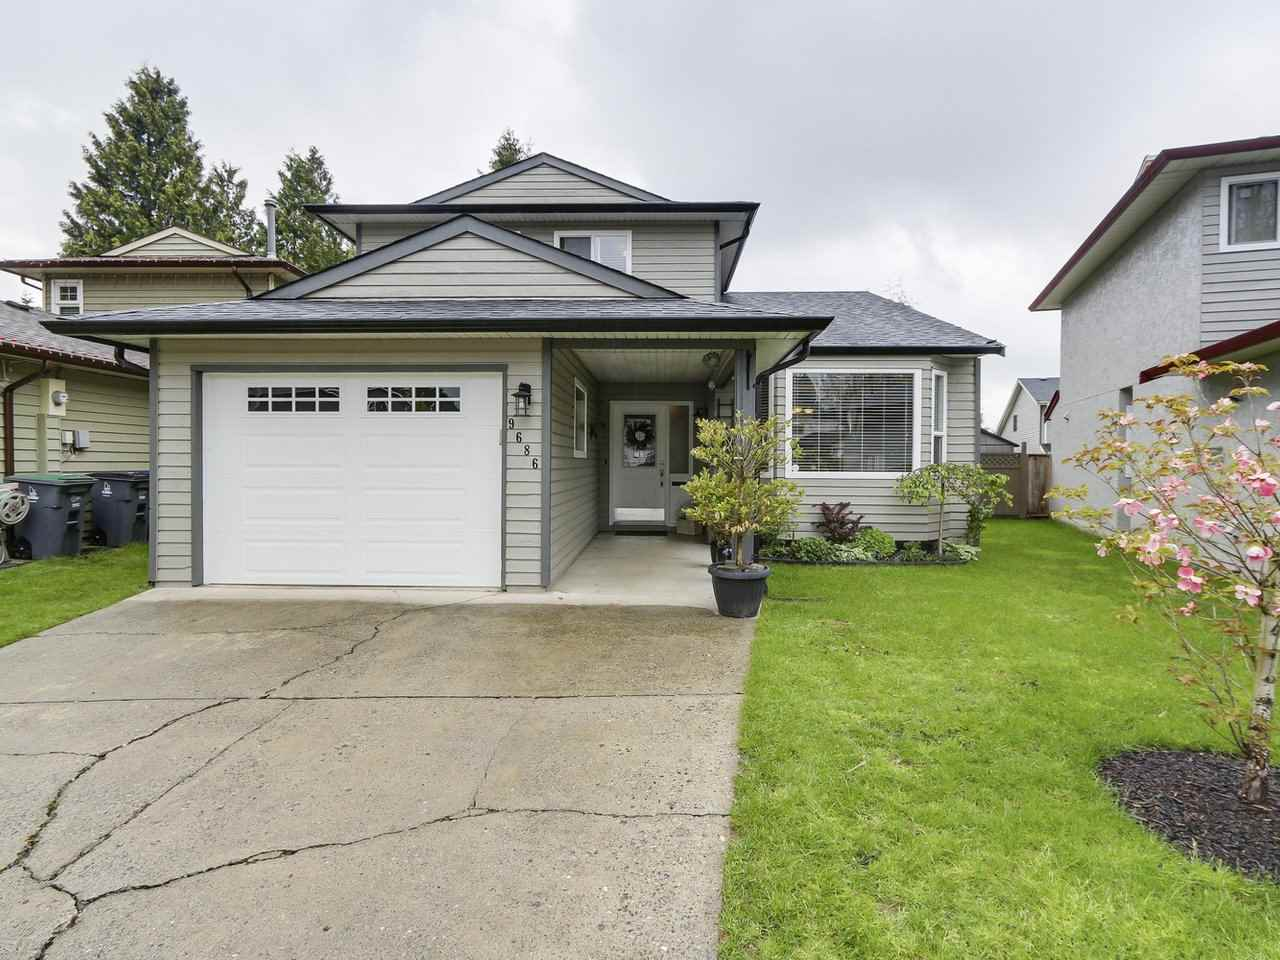 Main Photo: 9686 155 Street in Surrey: Guildford House for sale (North Surrey)  : MLS(r) # R2168540